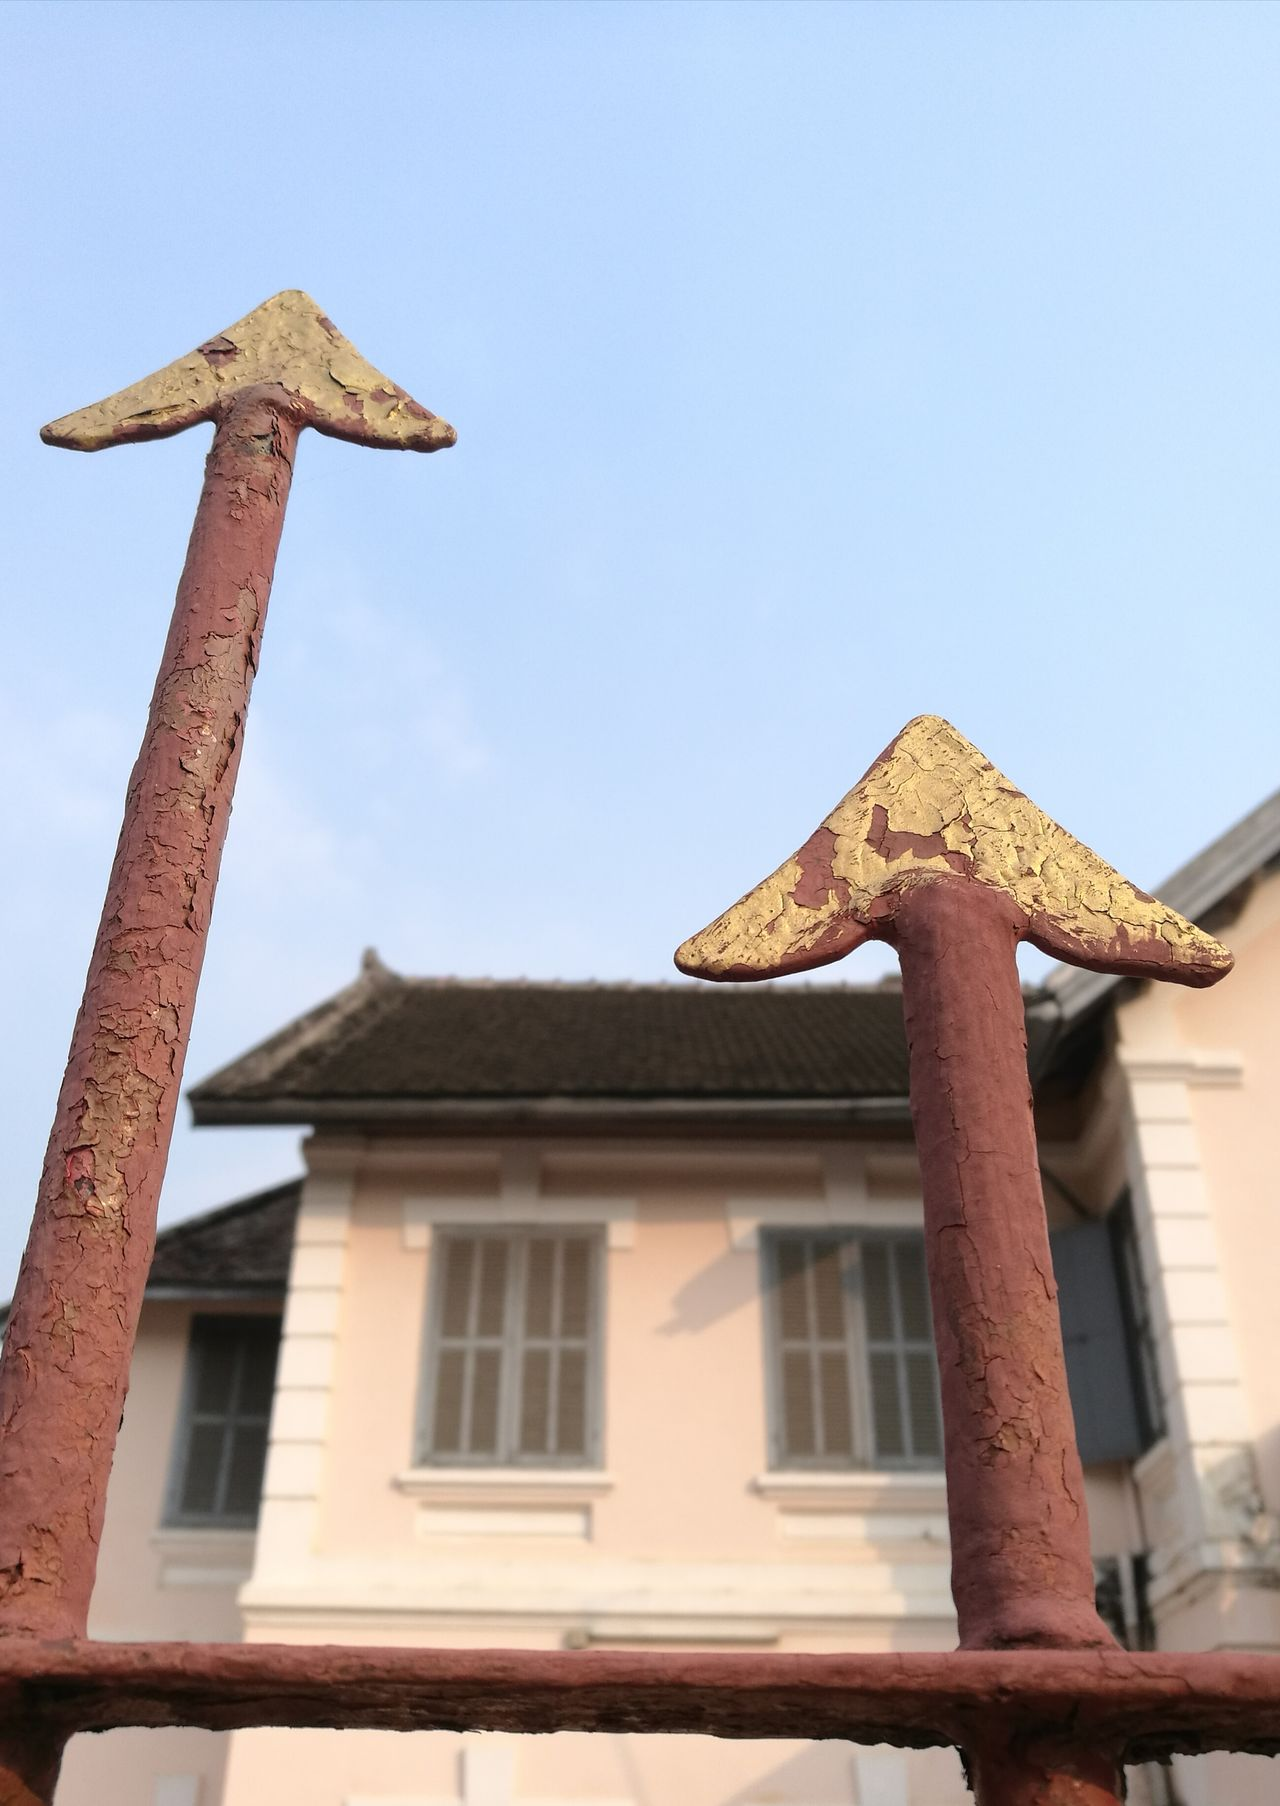 No People Built Structure Gold Colored Low Angle View Sky Architecture Day Outdoors Decoracion Arrows Short And Tall